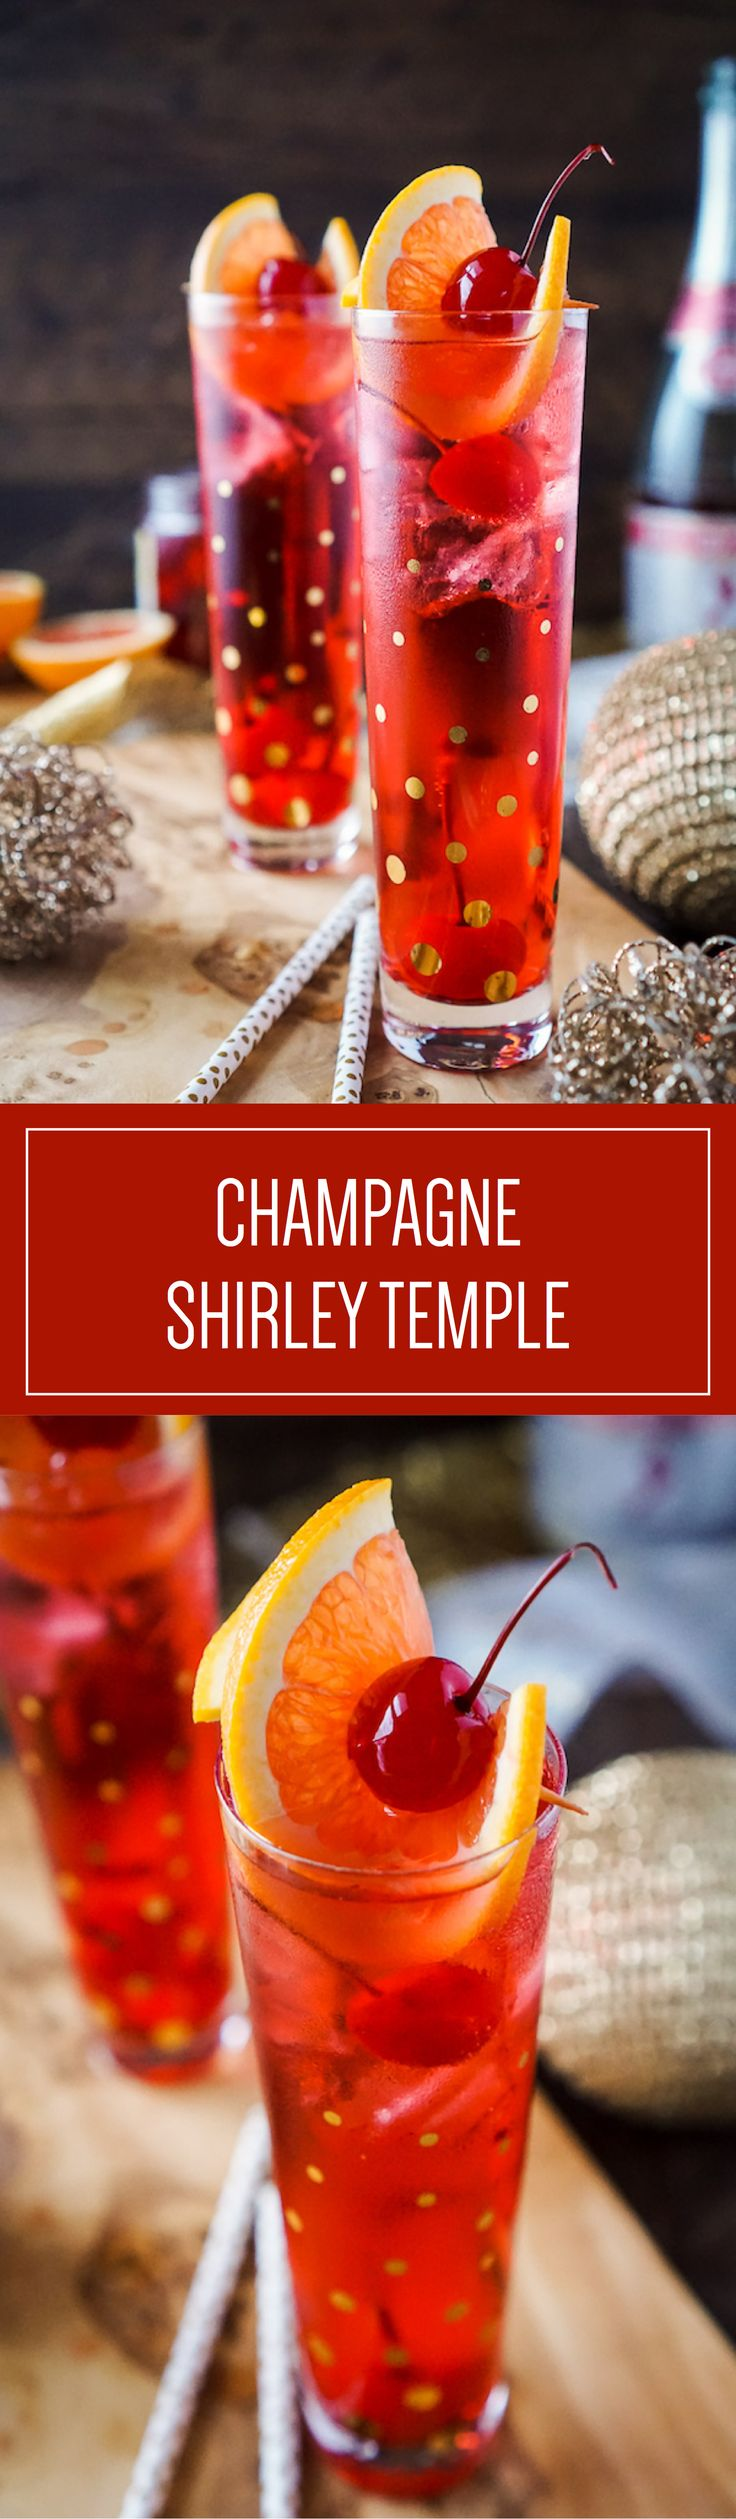 Champagne Shirley Temple is a childhood favorite with an adult twist. This nostalgic cocktail is sure to be a hit. #Ad